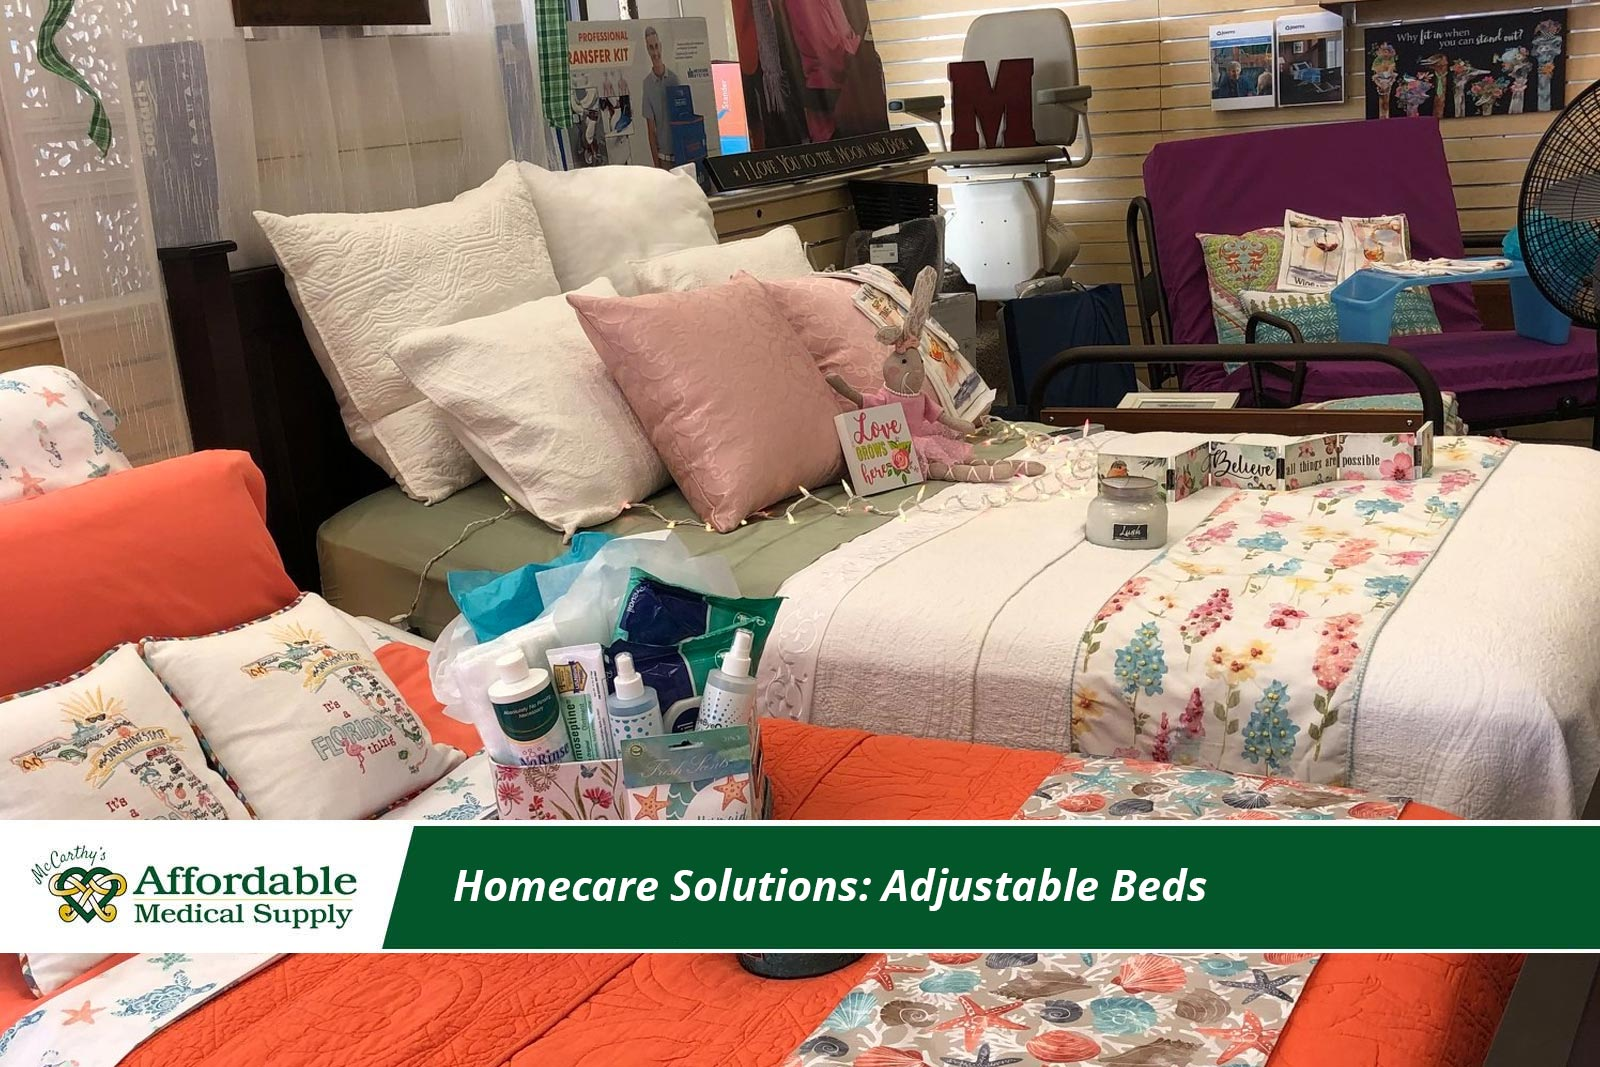 homecare solutions Affordable Medical Supply